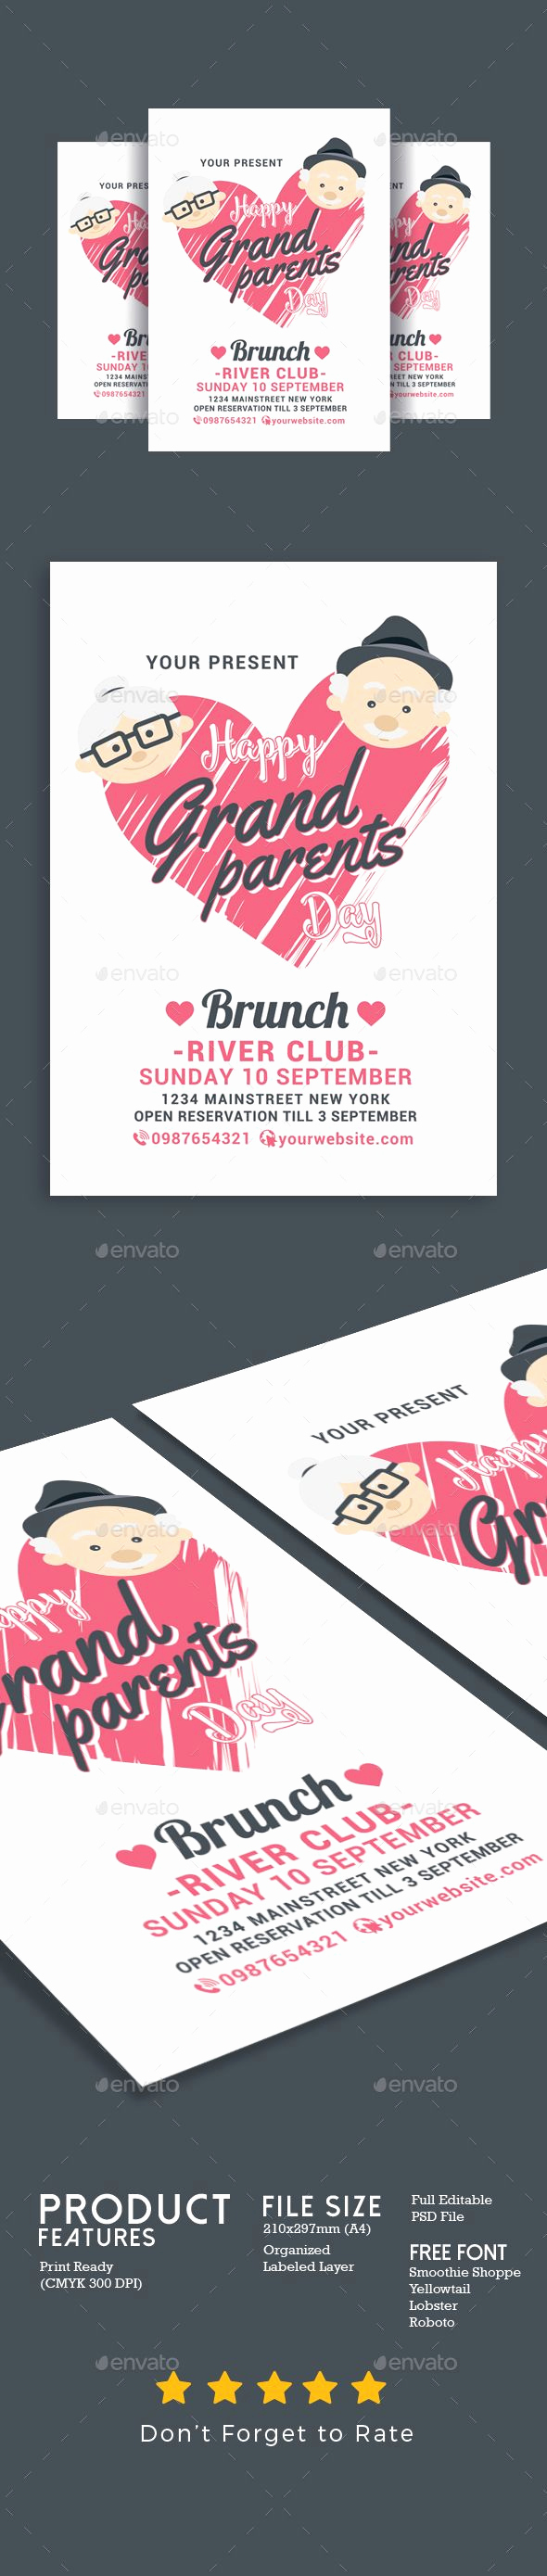 Grandparents Day Invitation Template New Best 25 Happy Grandparents Day Ideas On Pinterest